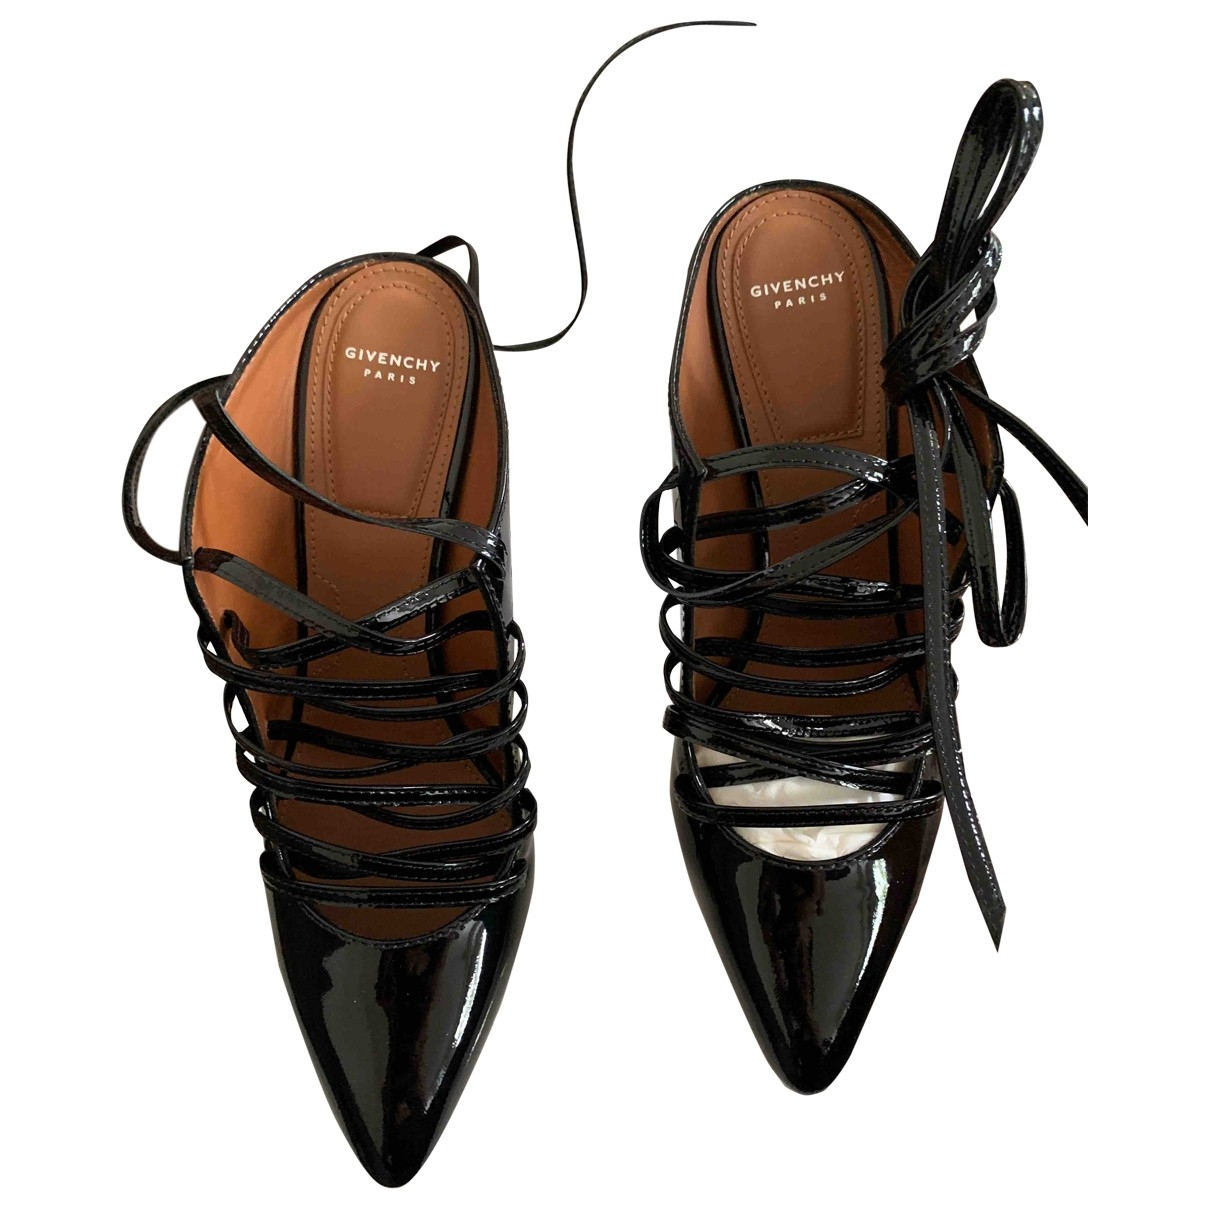 Givenchy \N Black Patent leather Sandals for Women 37.5 EU